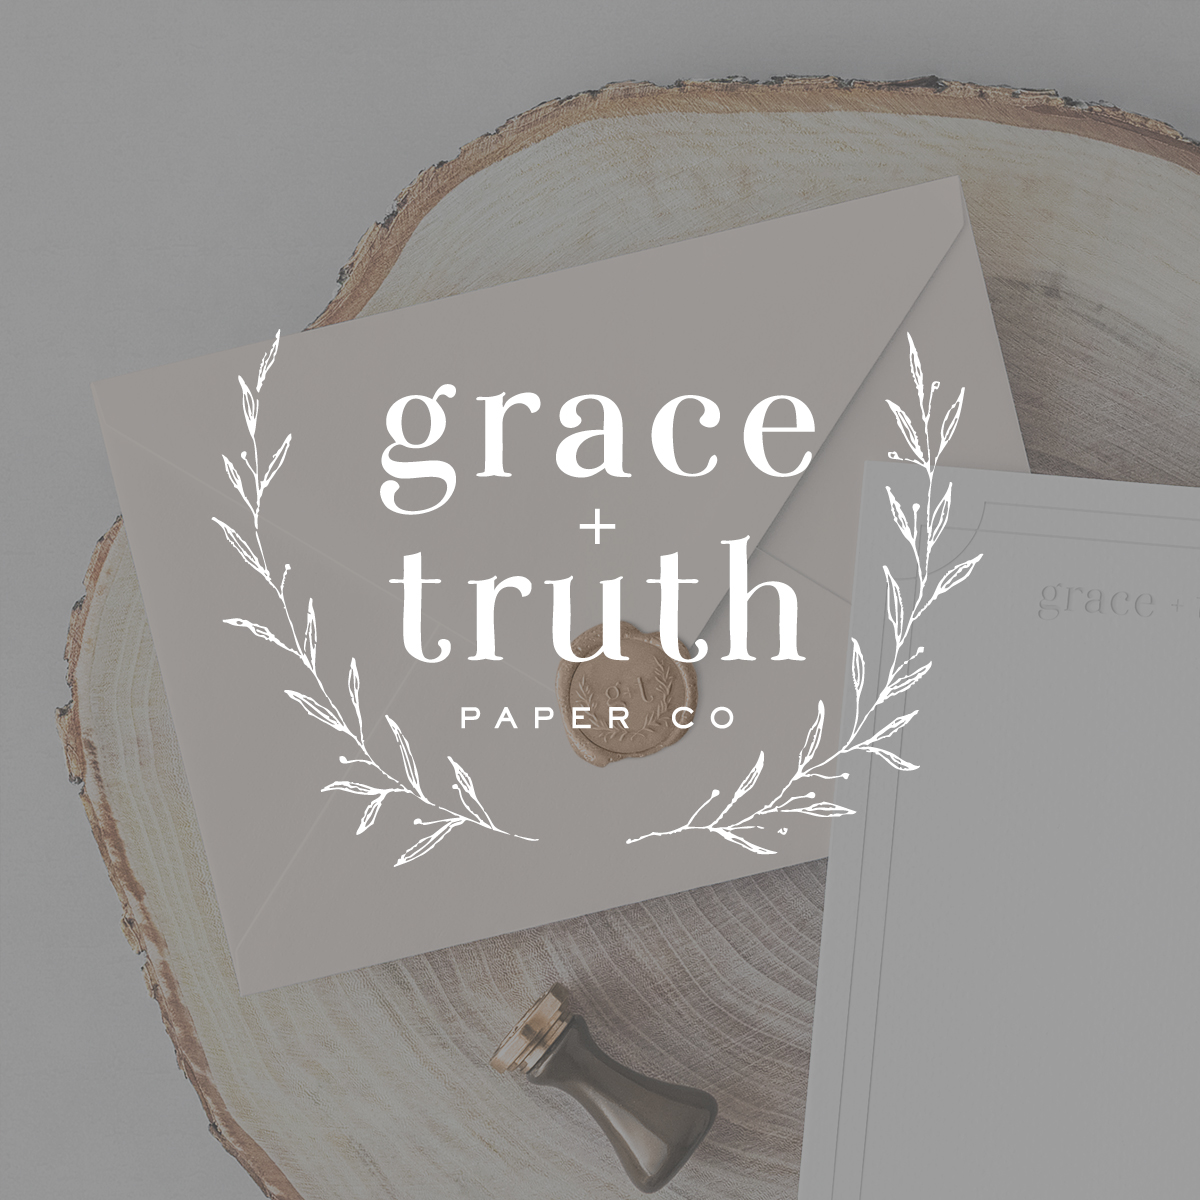 new-portfolio-thumbs_grace+truth.jpg